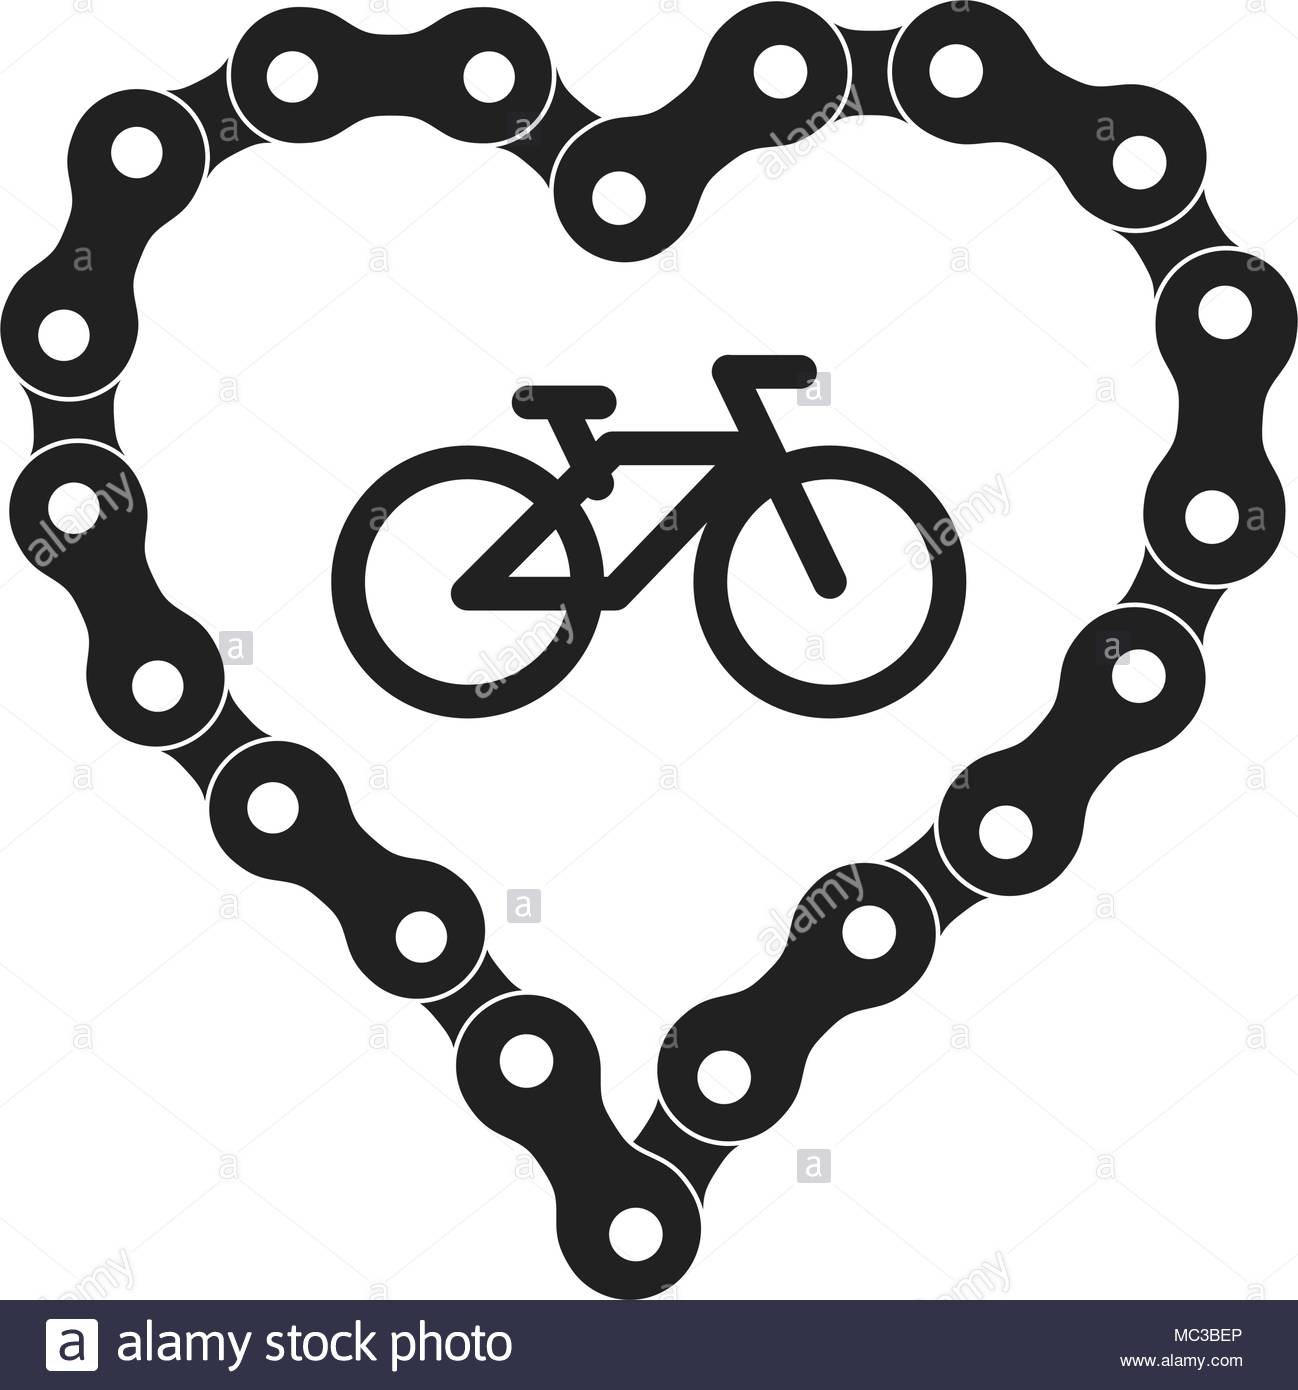 1298x1390 Heart Silhouette Stock Photos Amp Heart Silhouette Stock Images